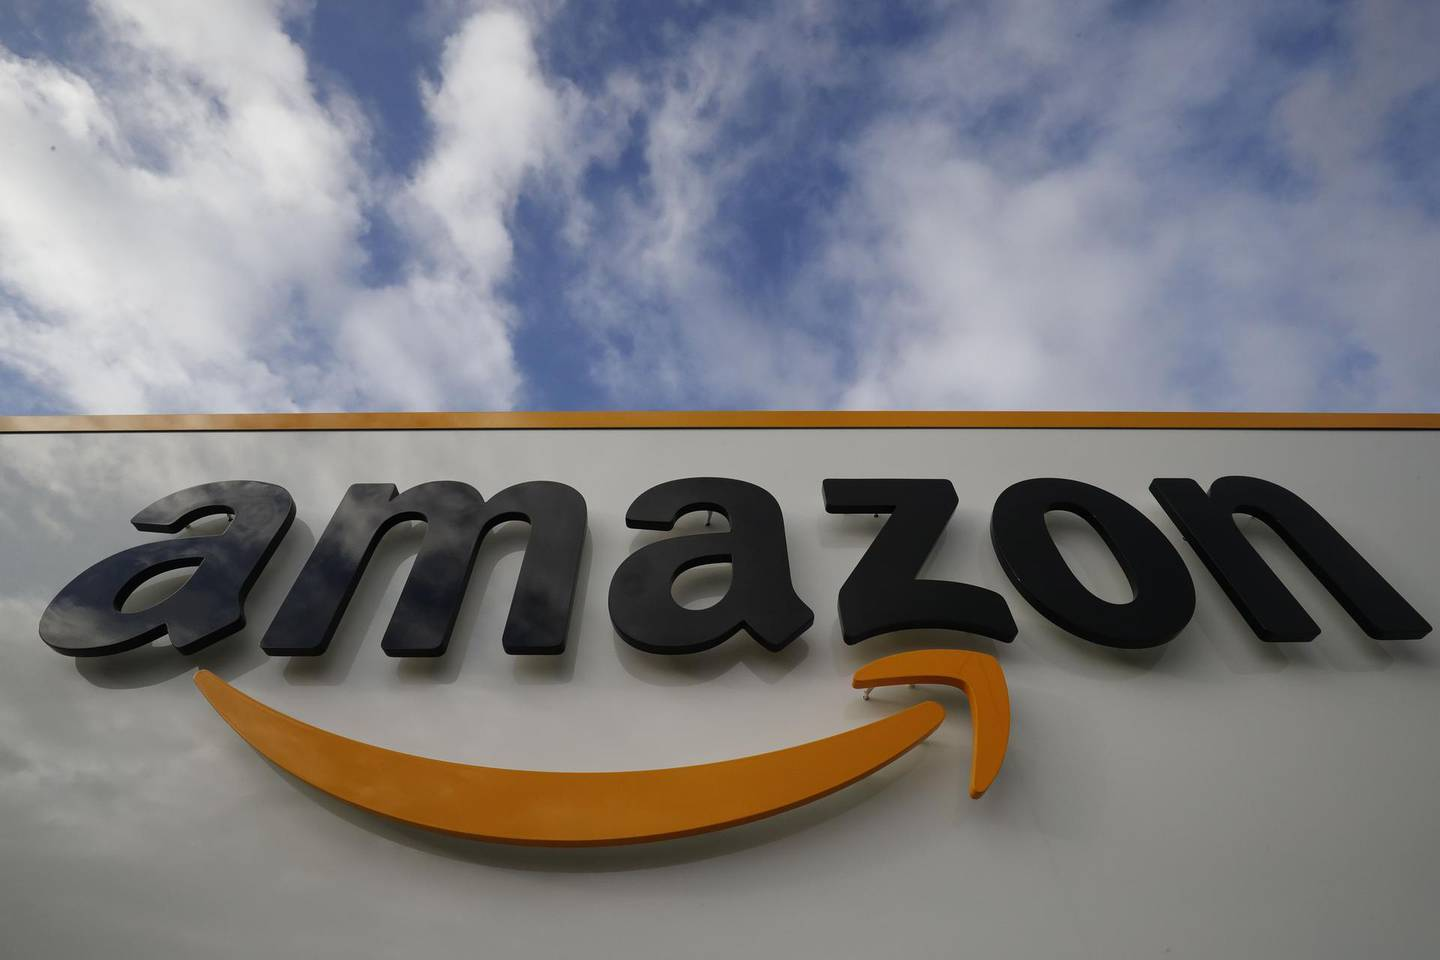 (FILES)This file photo taken on November 28, 2019,  shows the Amazon logo at one of the company's centre in Bretigny-sur-Orge. US logistics giant Amazon announced on April 27, 2020, that it was extending until May 5, 2020, the suspension of activity at its distribution centres in France, after a court decision requiring it to assess the risks associated with the COVID-19 outbreak, caused by the novel coronavirus.  / AFP / Thomas SAMSON